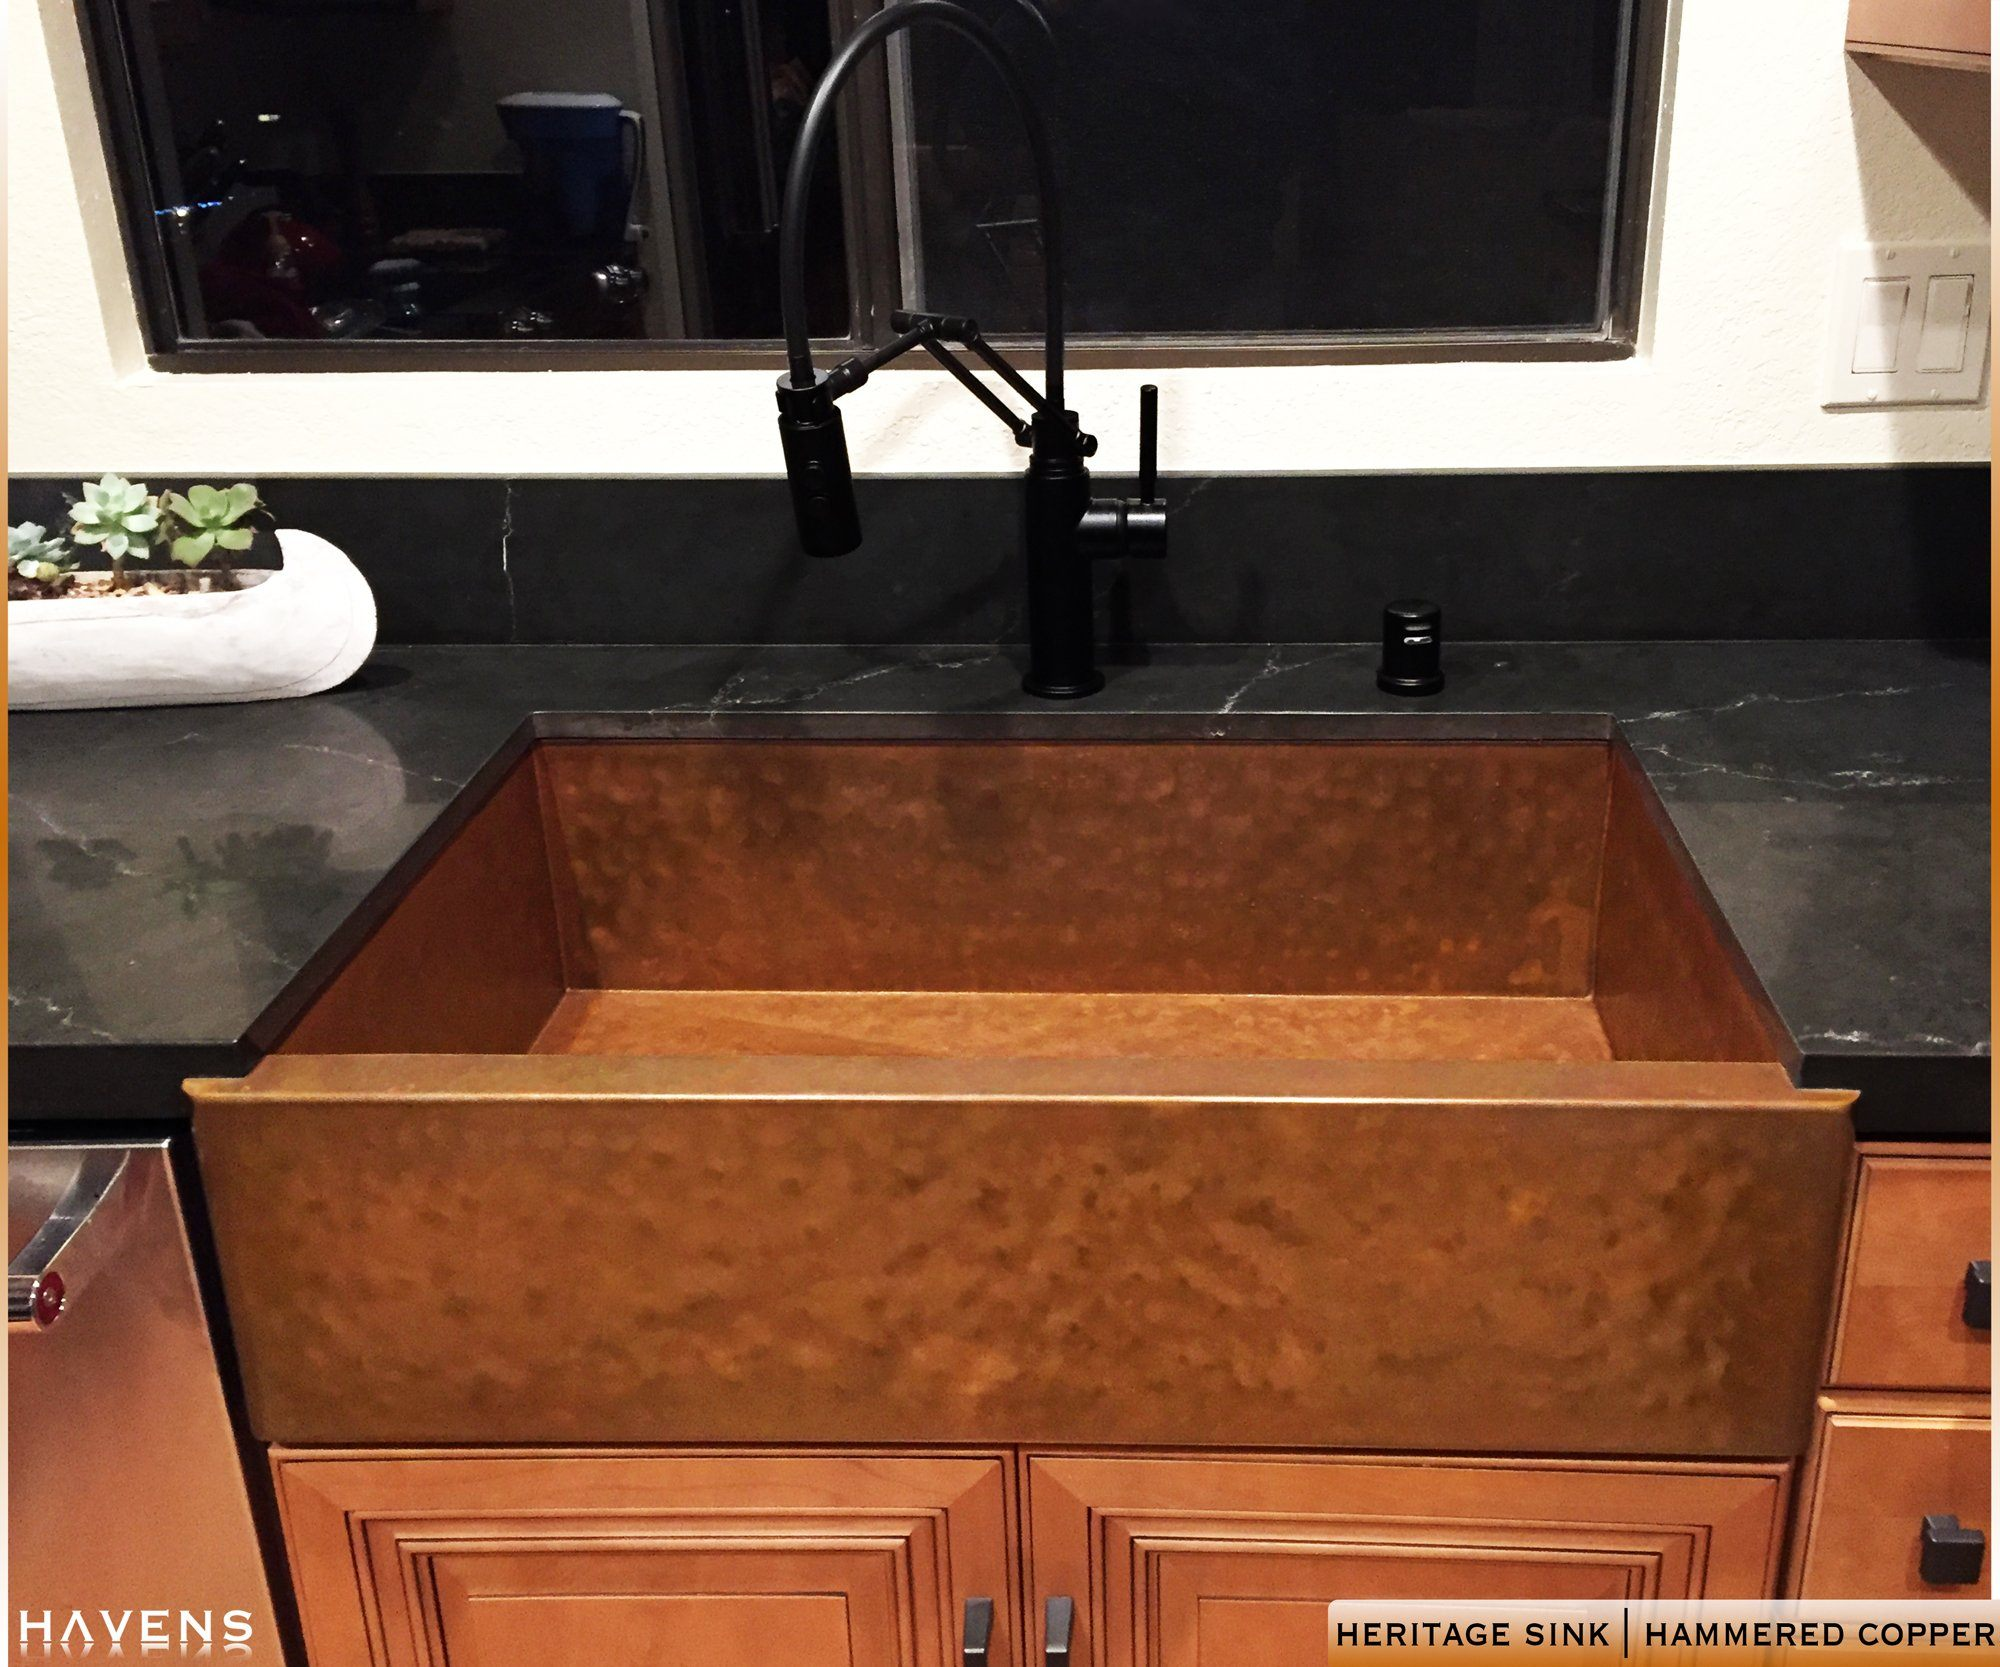 Hammered copper farmhouse sink made in USA from 14 gauge cold rolled 48pz copper. Patina artwork